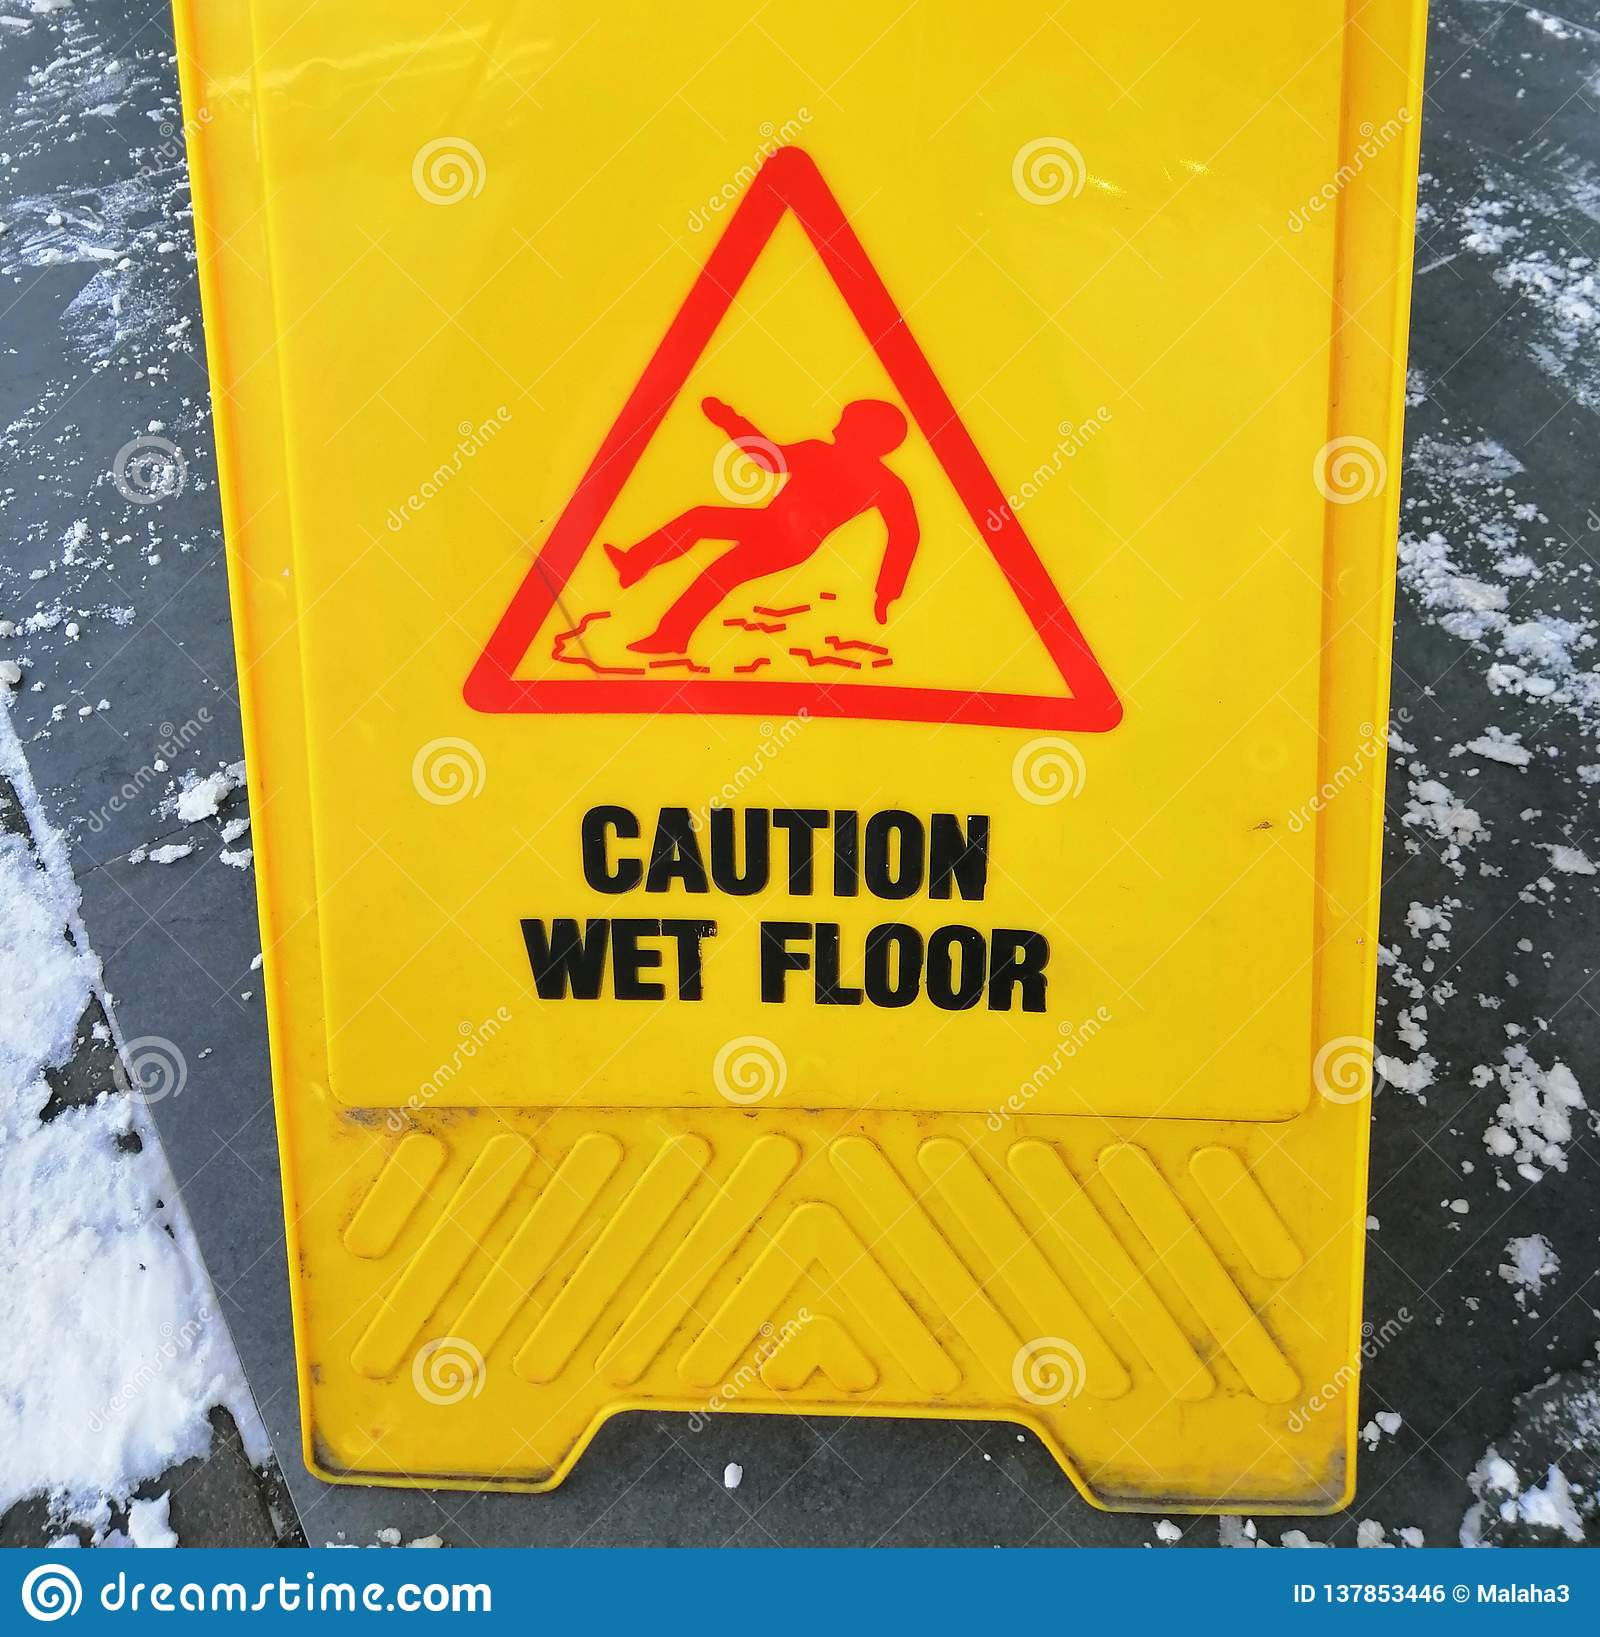 Caution ice - a sign for pedestrians in the winter